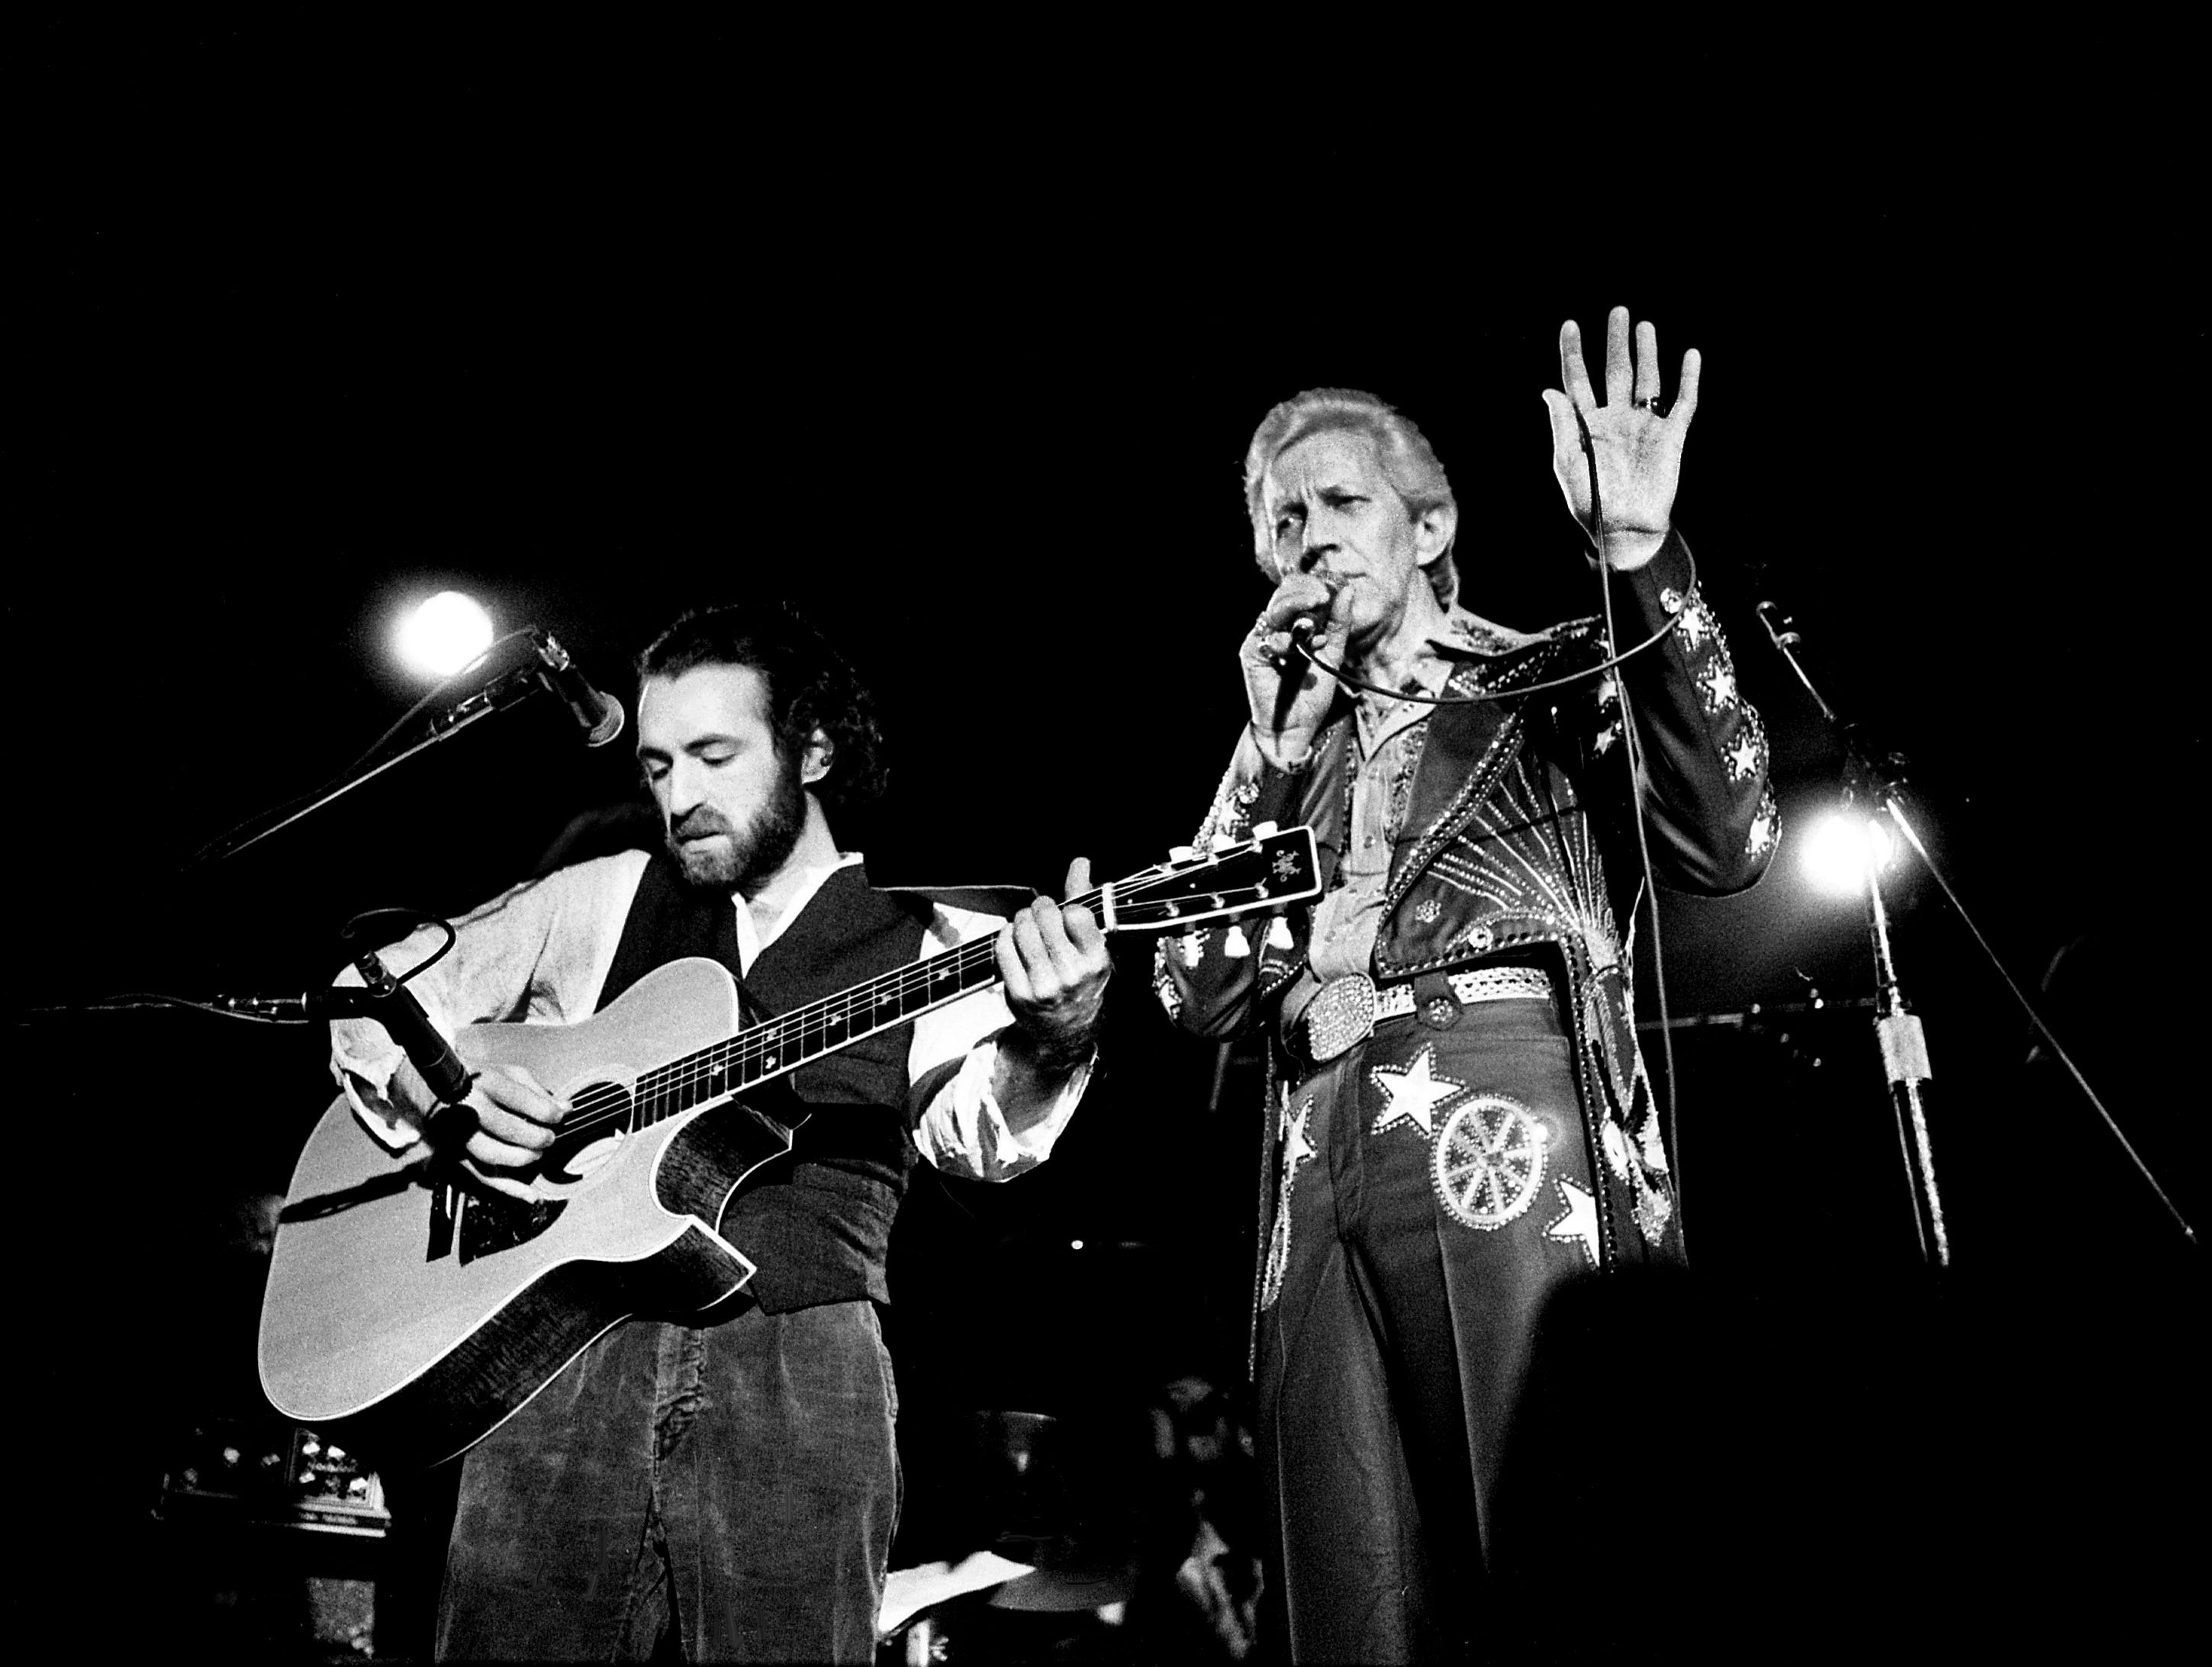 Porter Wagoner, right, is introducing one of his guest performers, Jay Bolotin, during his show at the Exit/In Jan. 31, 1979.